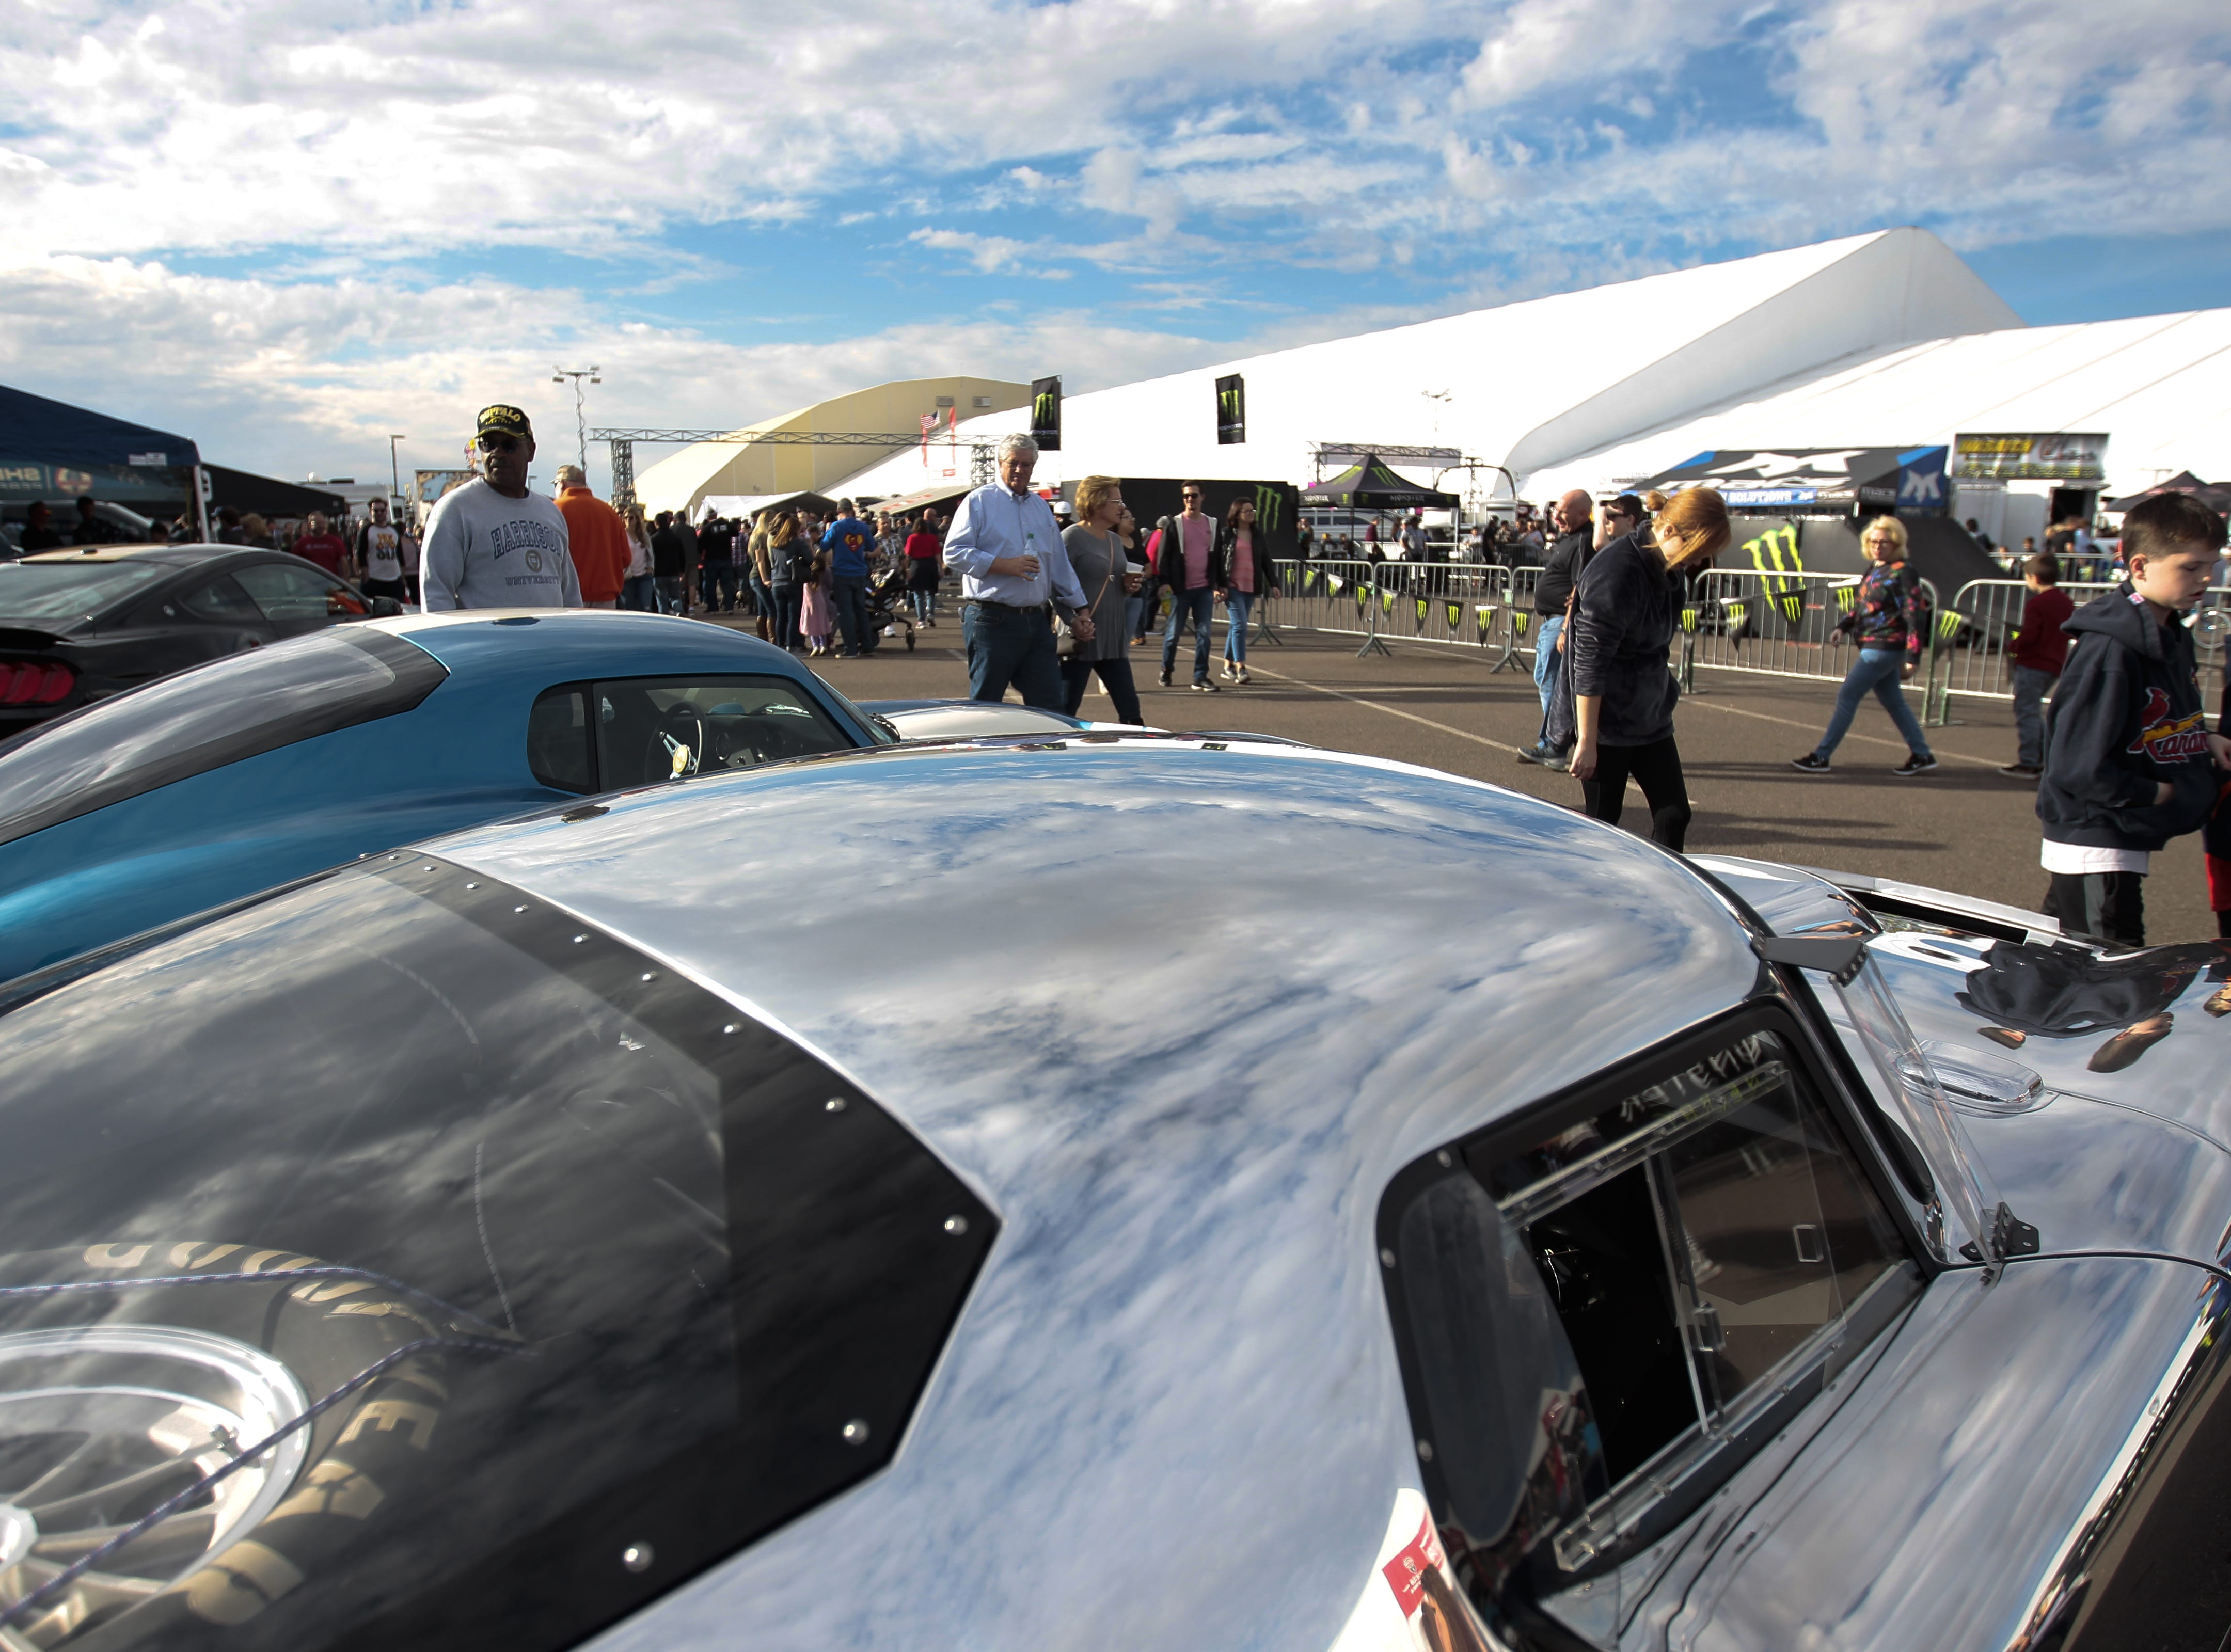 People walk by a Shelby Daytona Coupe made of aluminum at the Barrett-Jackson Car Auction on Jan. 12, the first day of the event.